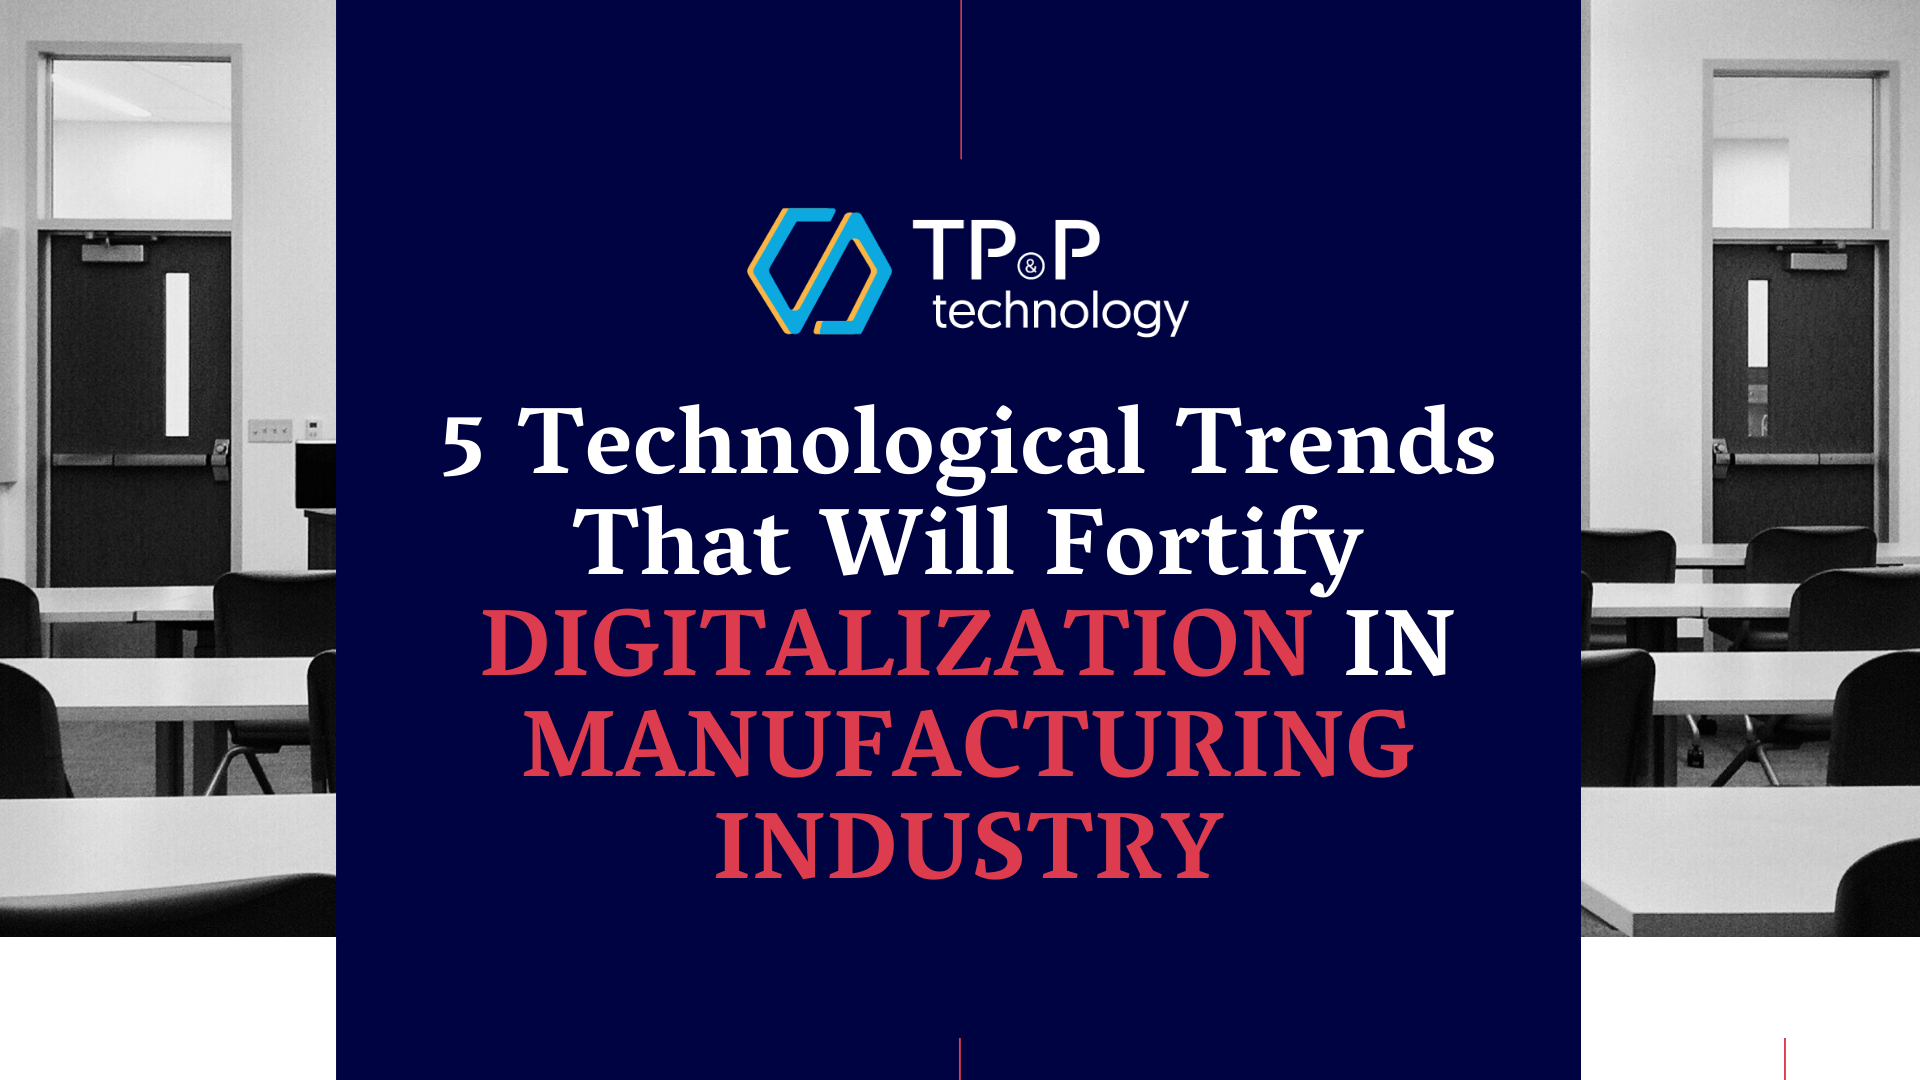 5 TECHNOLOGY TRENDS THAT WILL FORTIFY DIGITALIZATION IN MANUFACTURING INDUSTRY